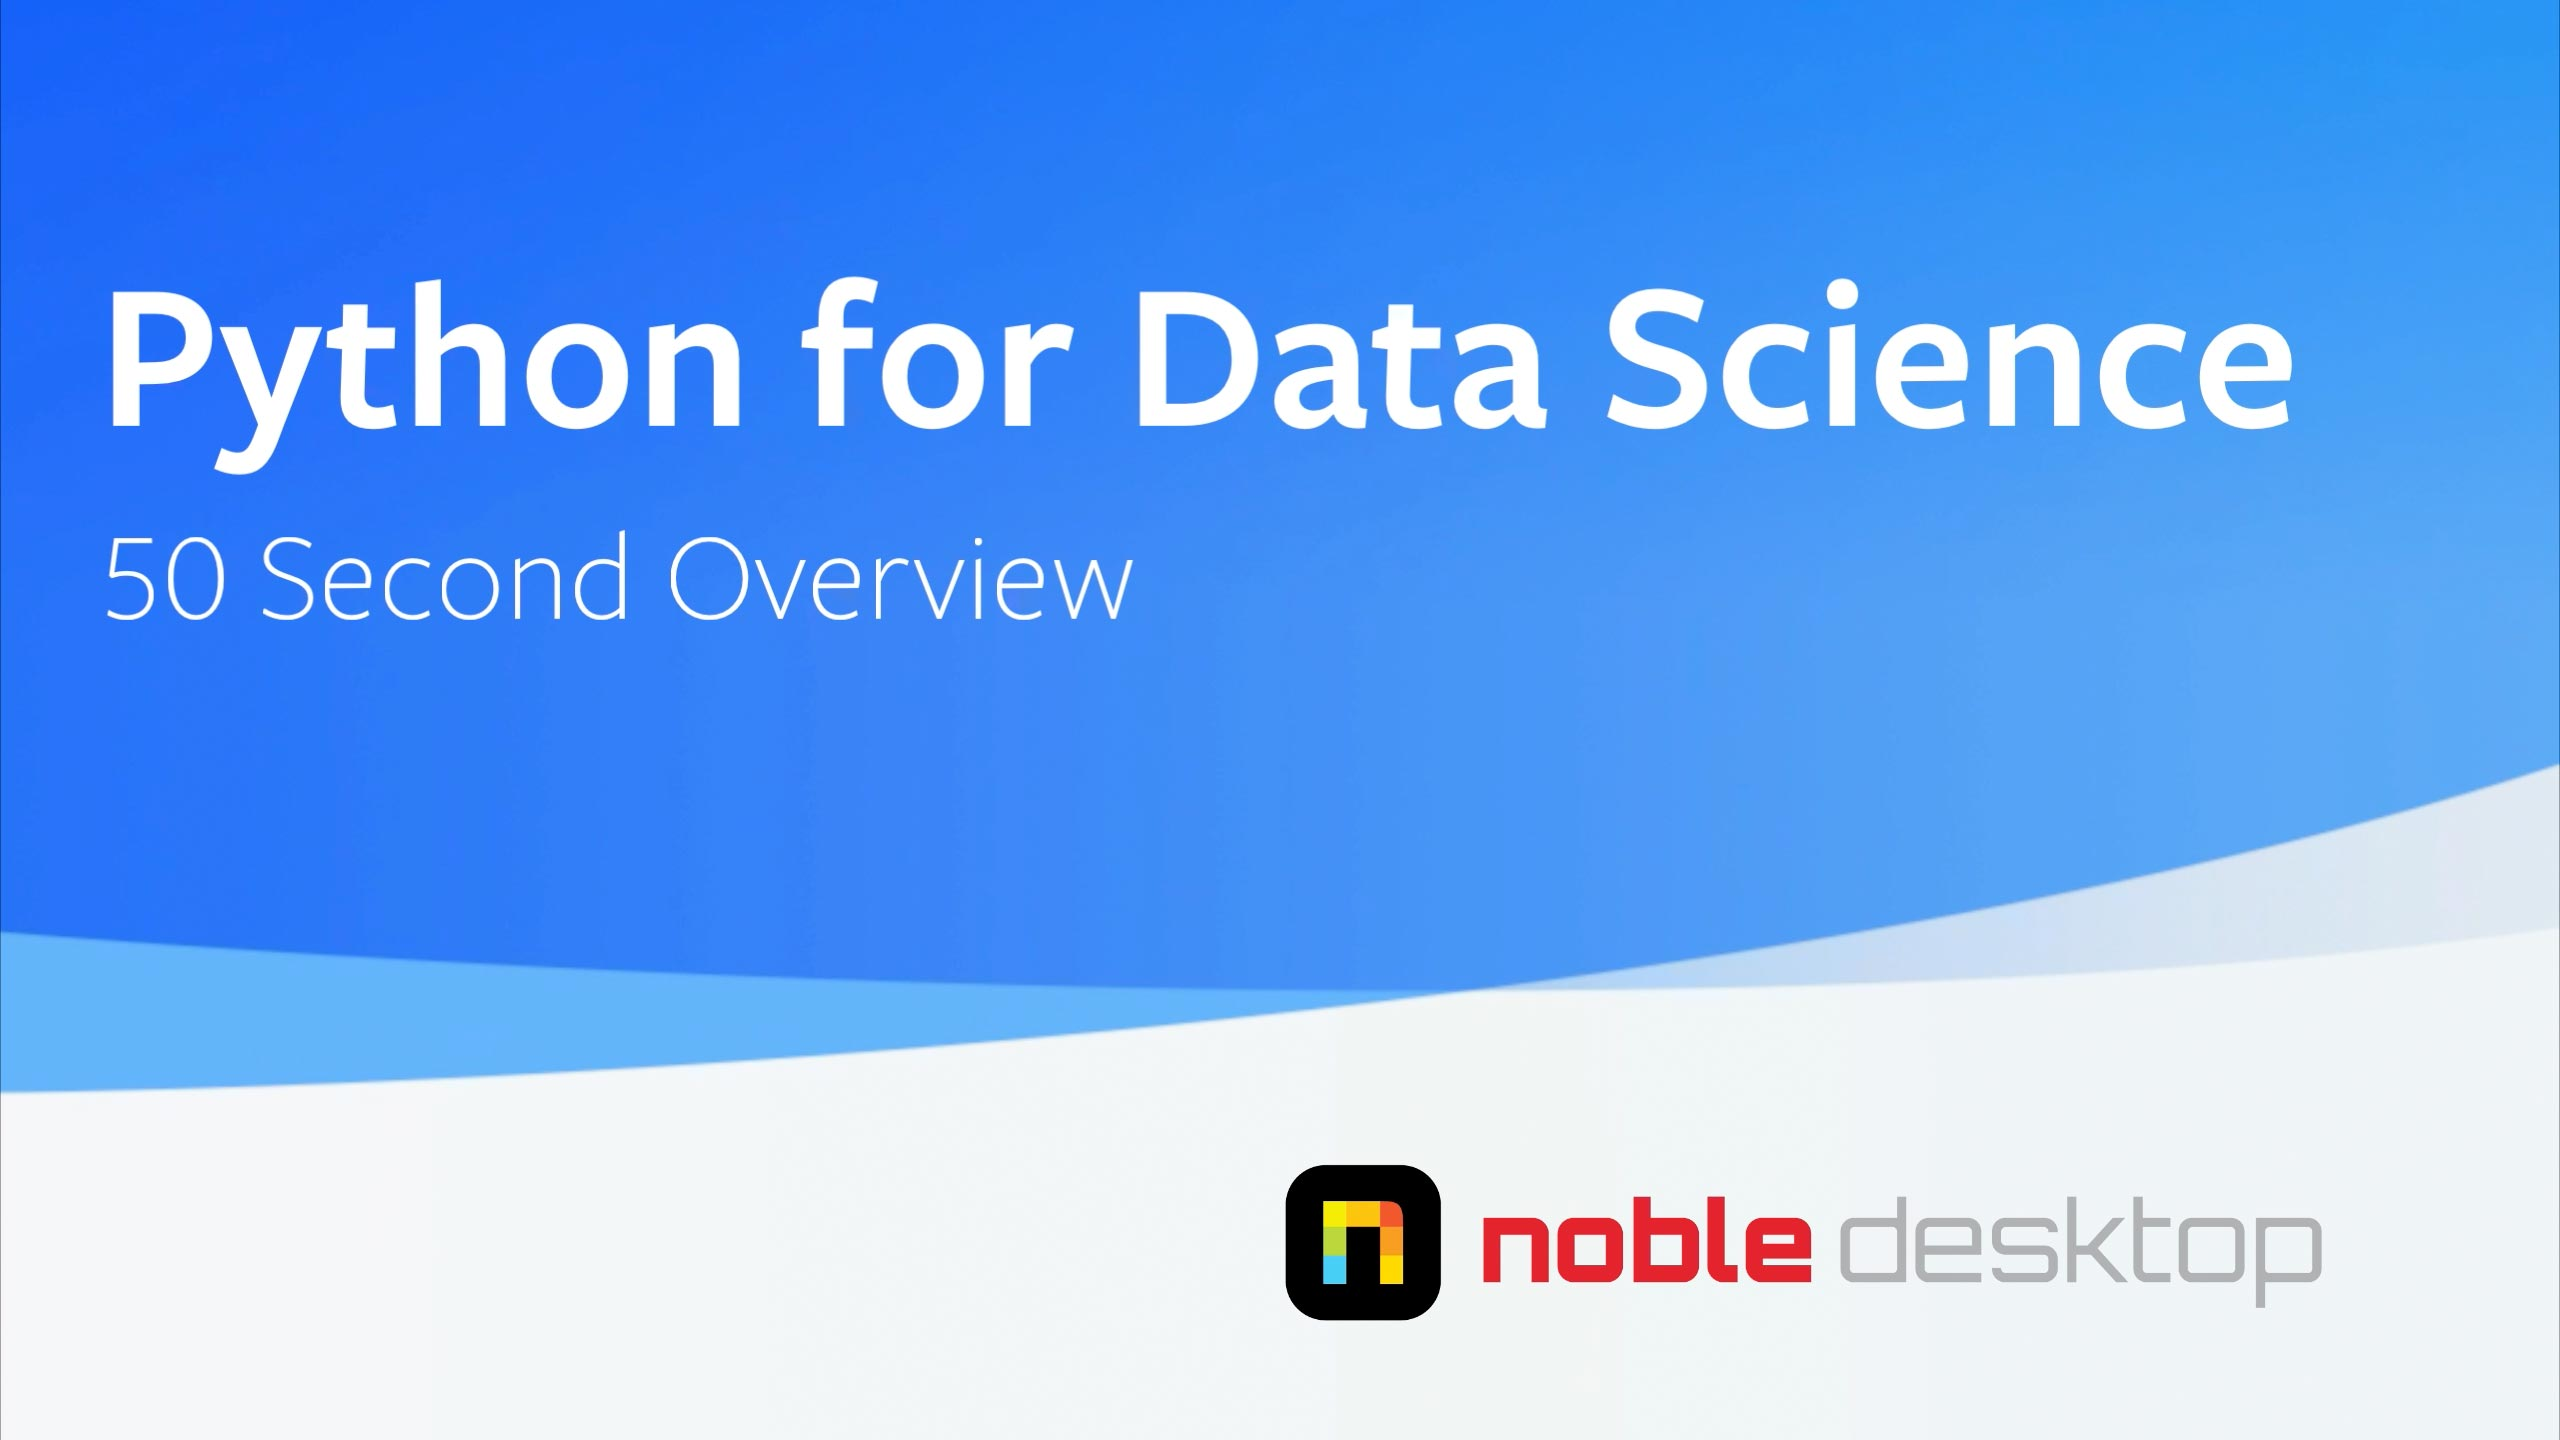 Python for Data Science Bootcamp Class Overview